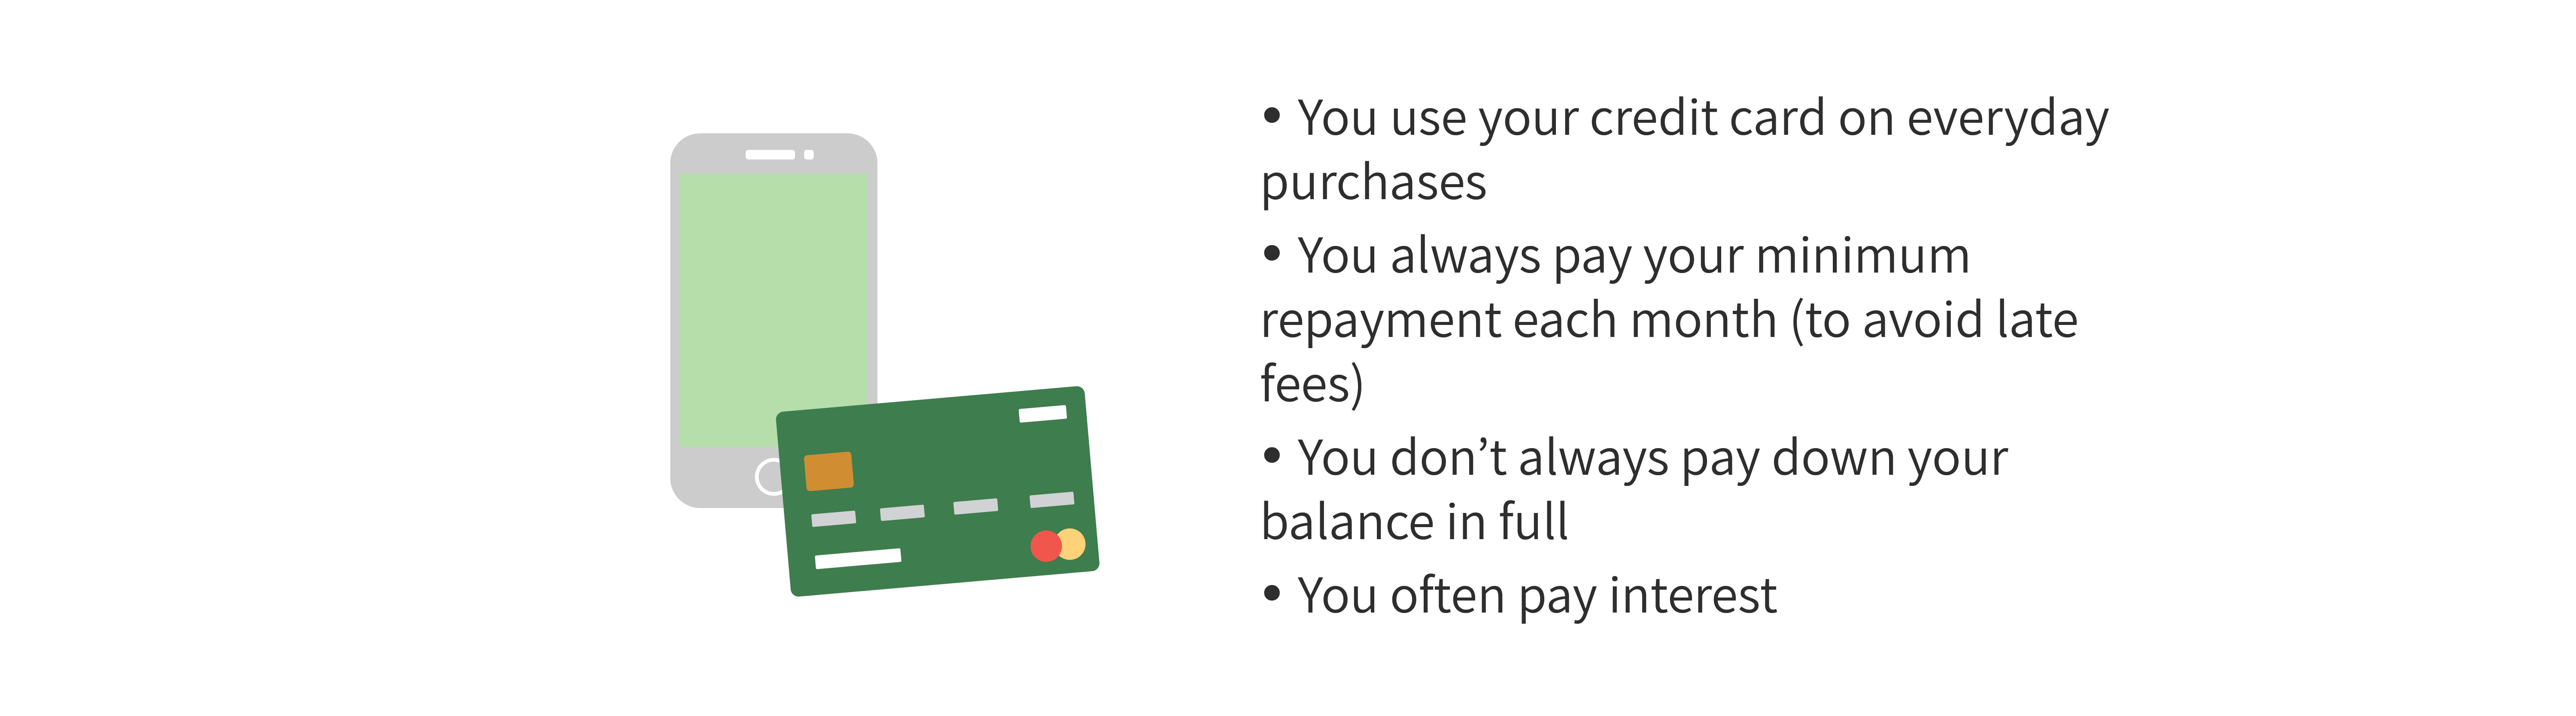 characteristics of a low rate credit card user